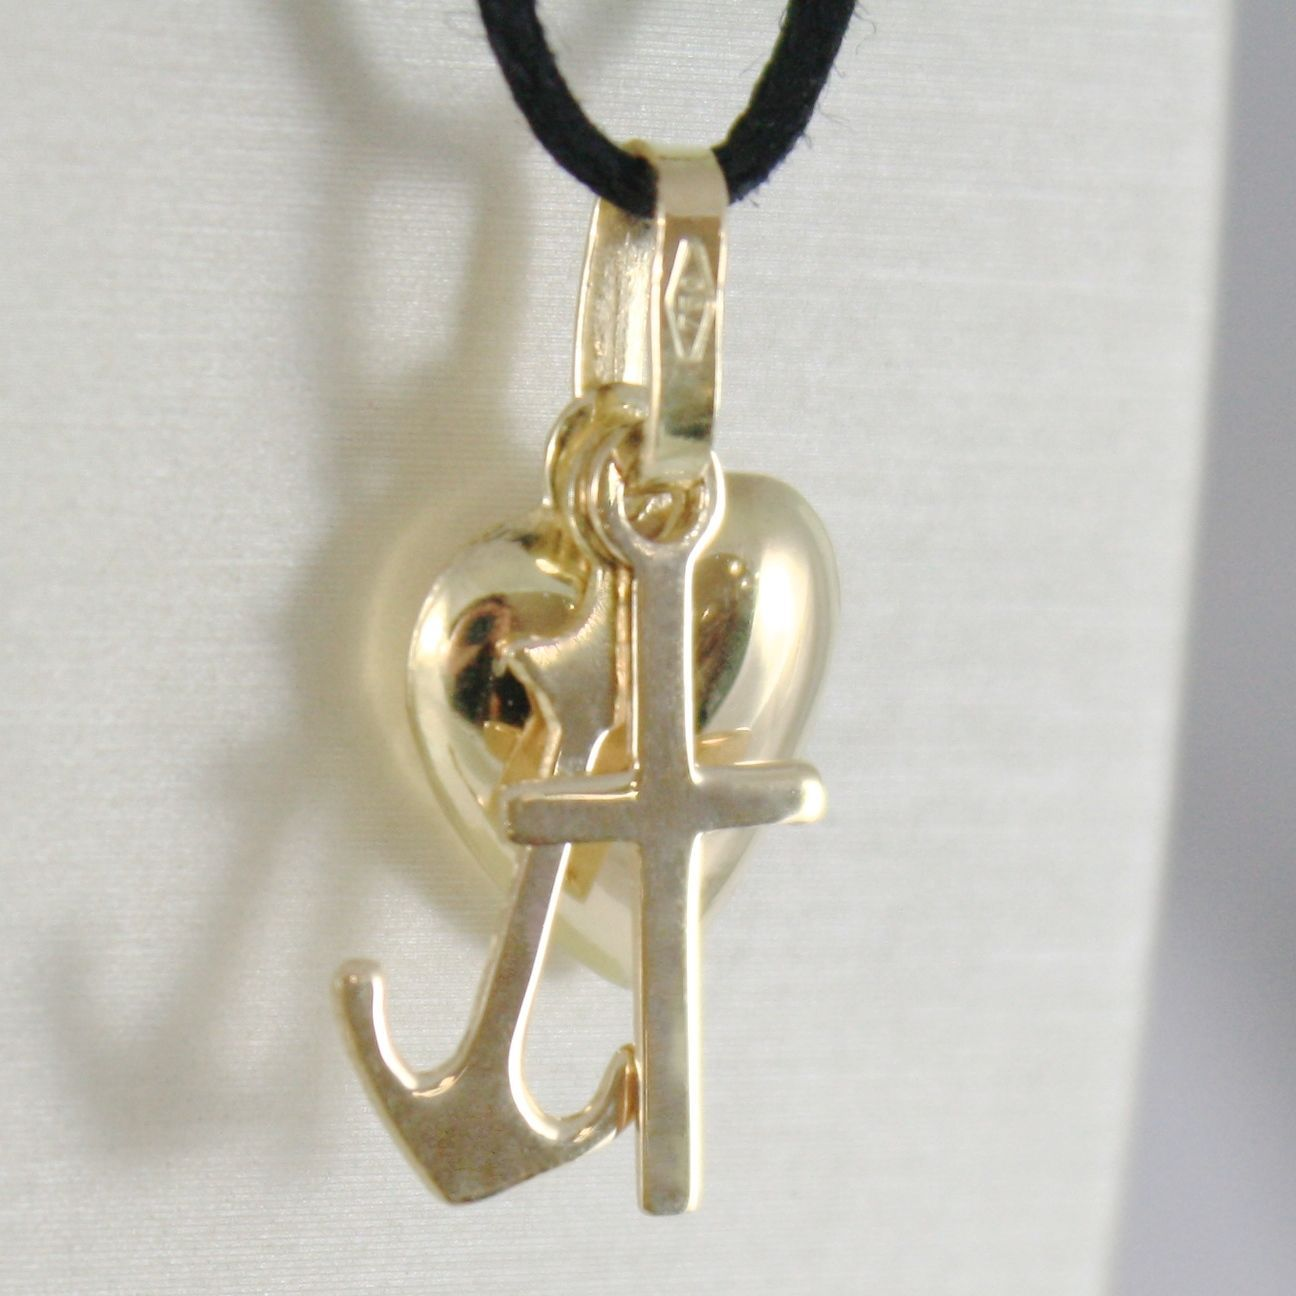 18K YELLOW GOLD FAITH HOPE CHARITY PENDANT CHARM 22 MM SMOOTH MADE IN ITALY